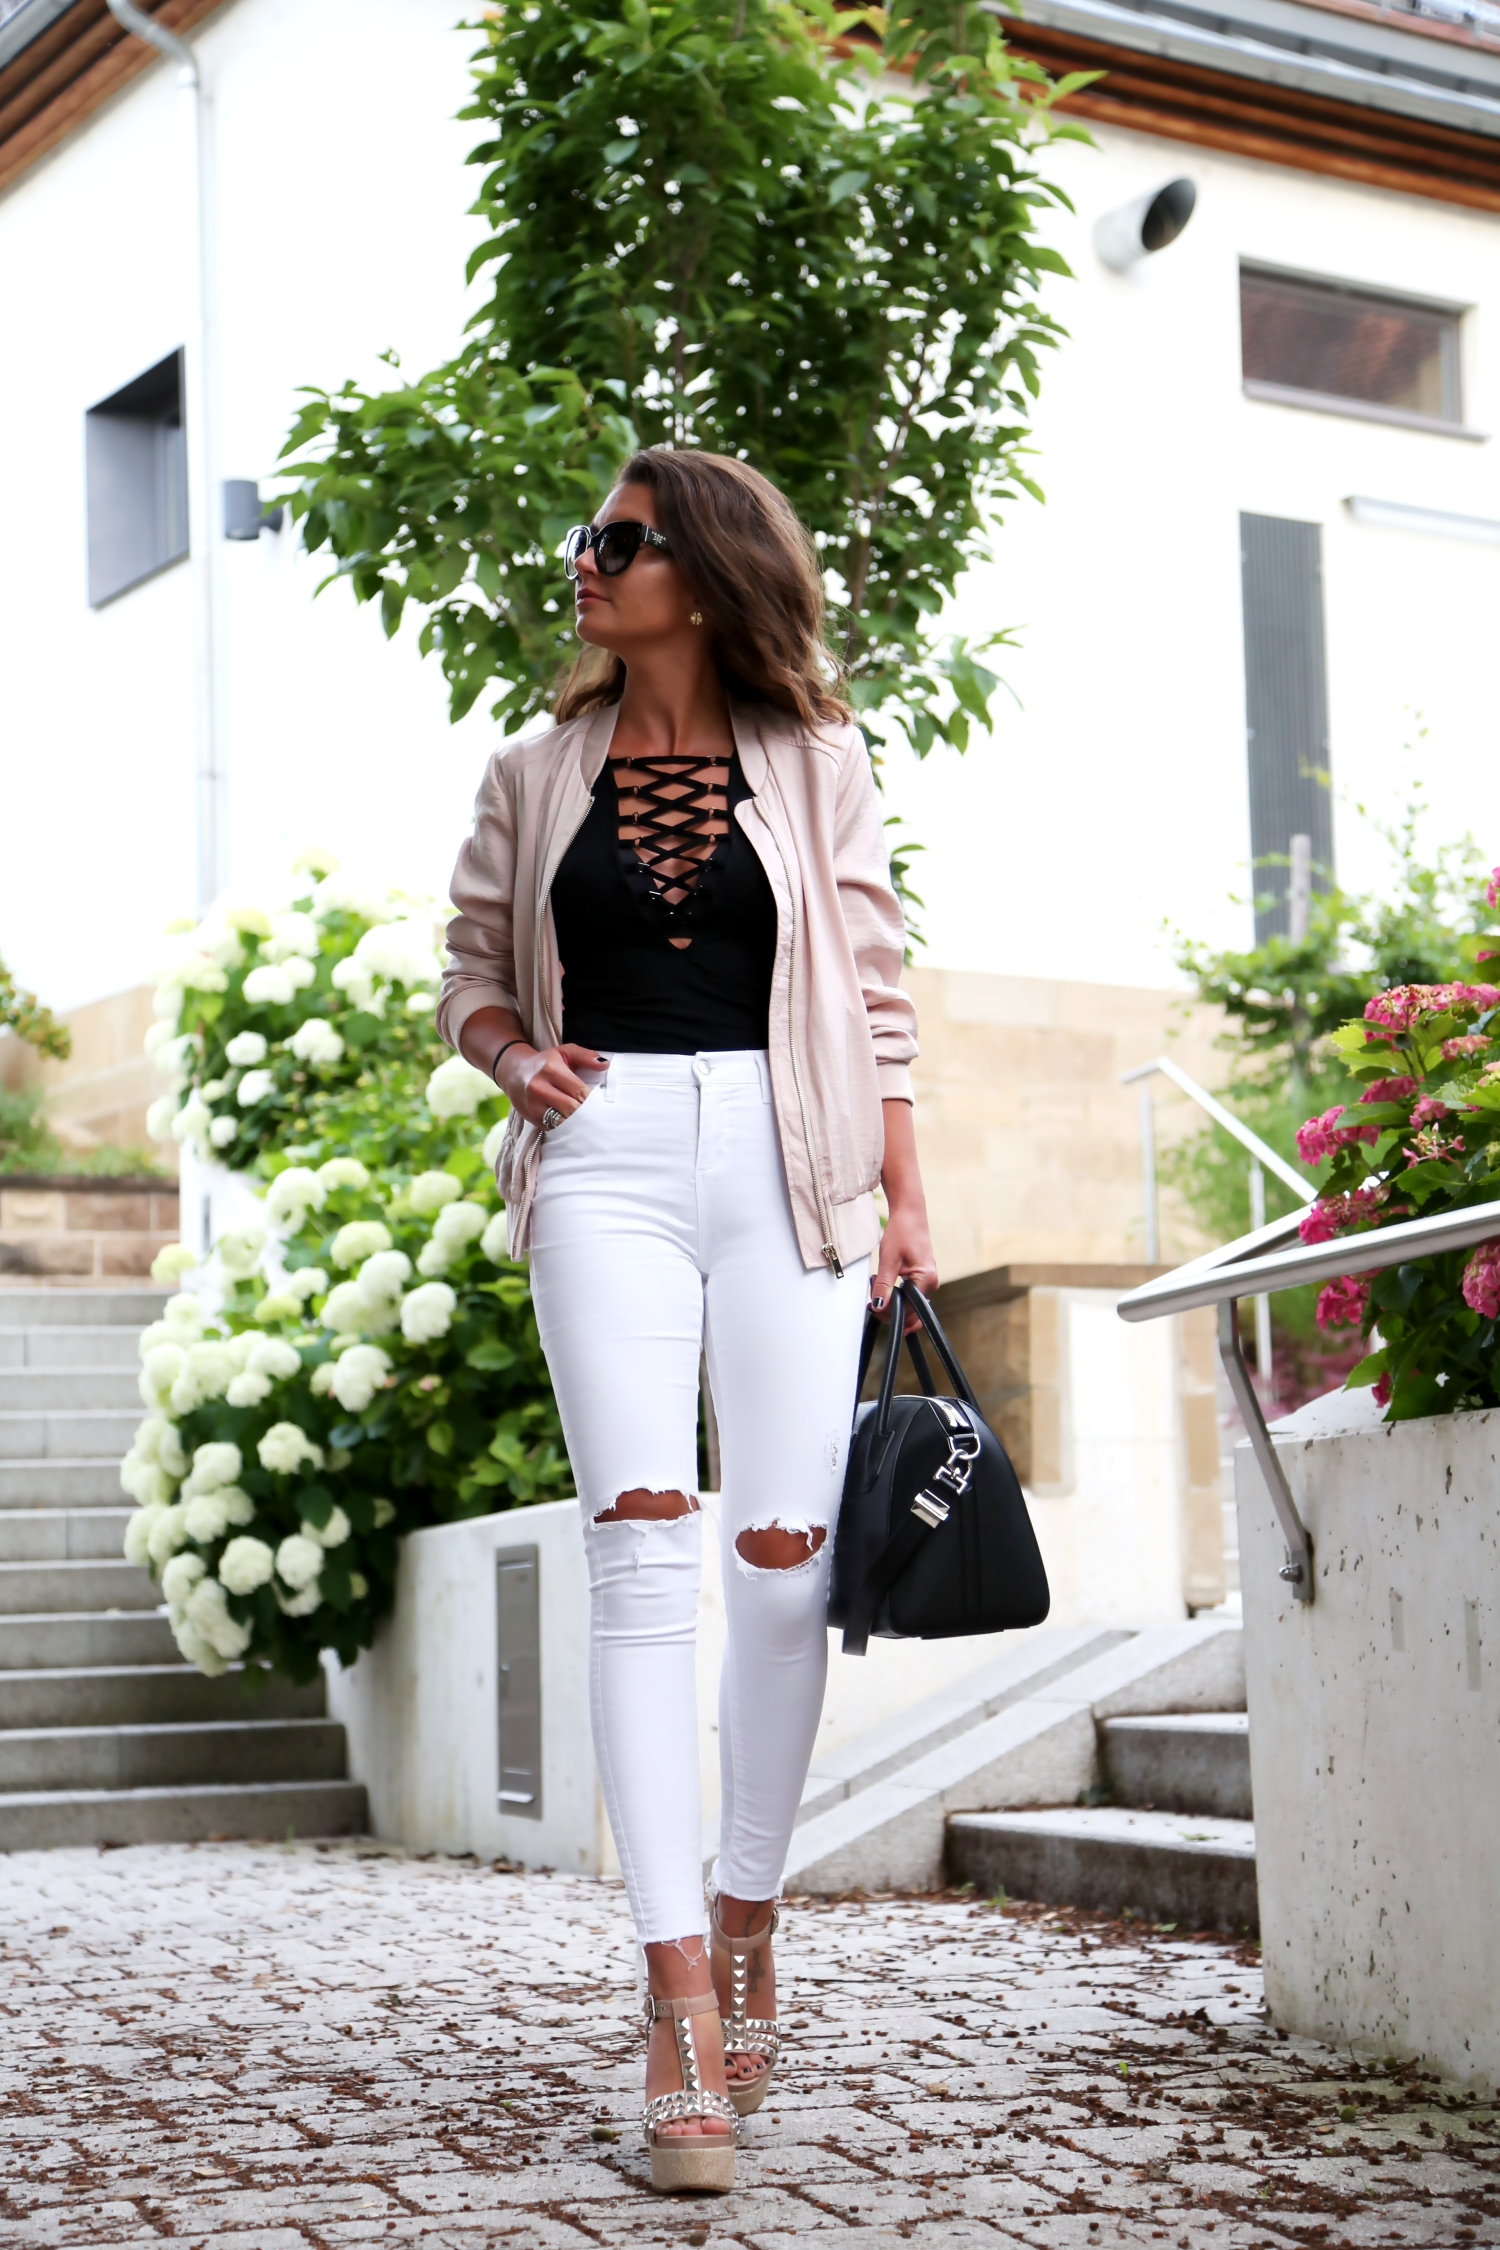 outfit-bomber-jacket-white-ripped-jeans-givenchy-bag-pura-lopez-wedges